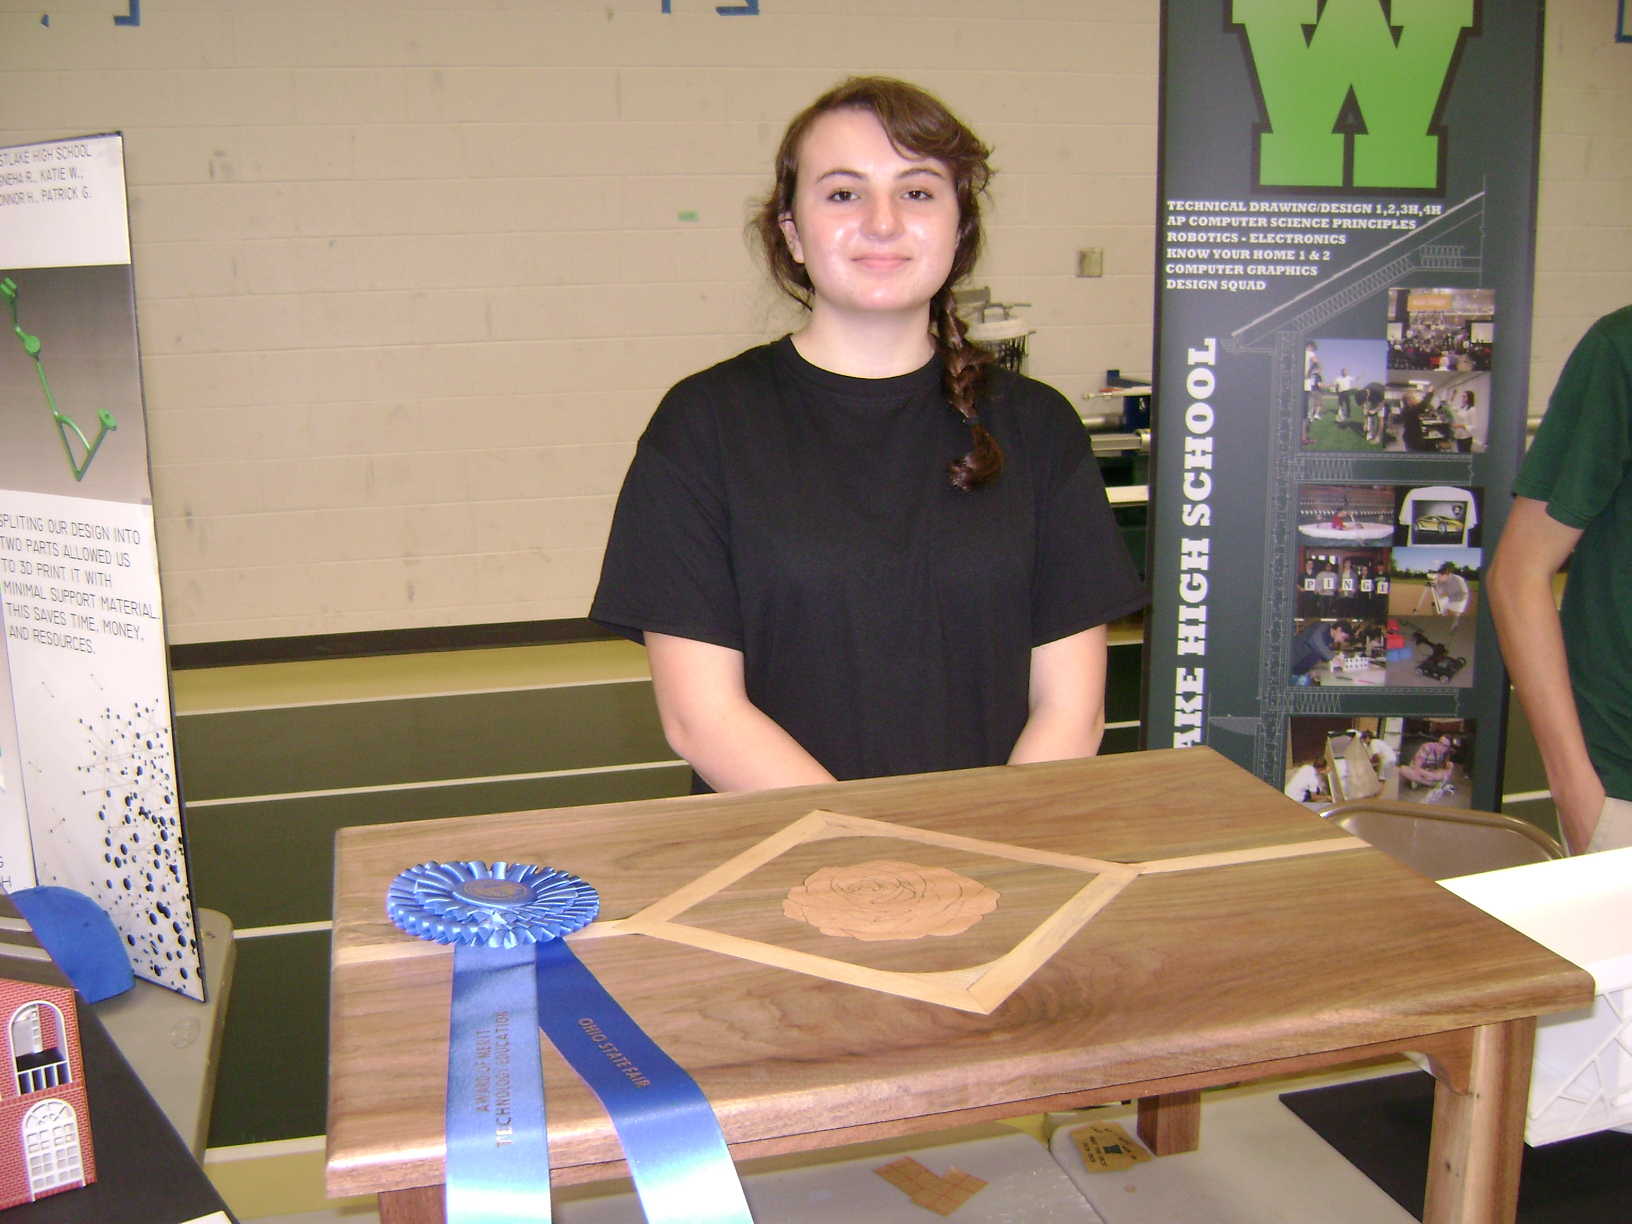 Katie Willi - designed a walnut table with a laser engraved rose on top